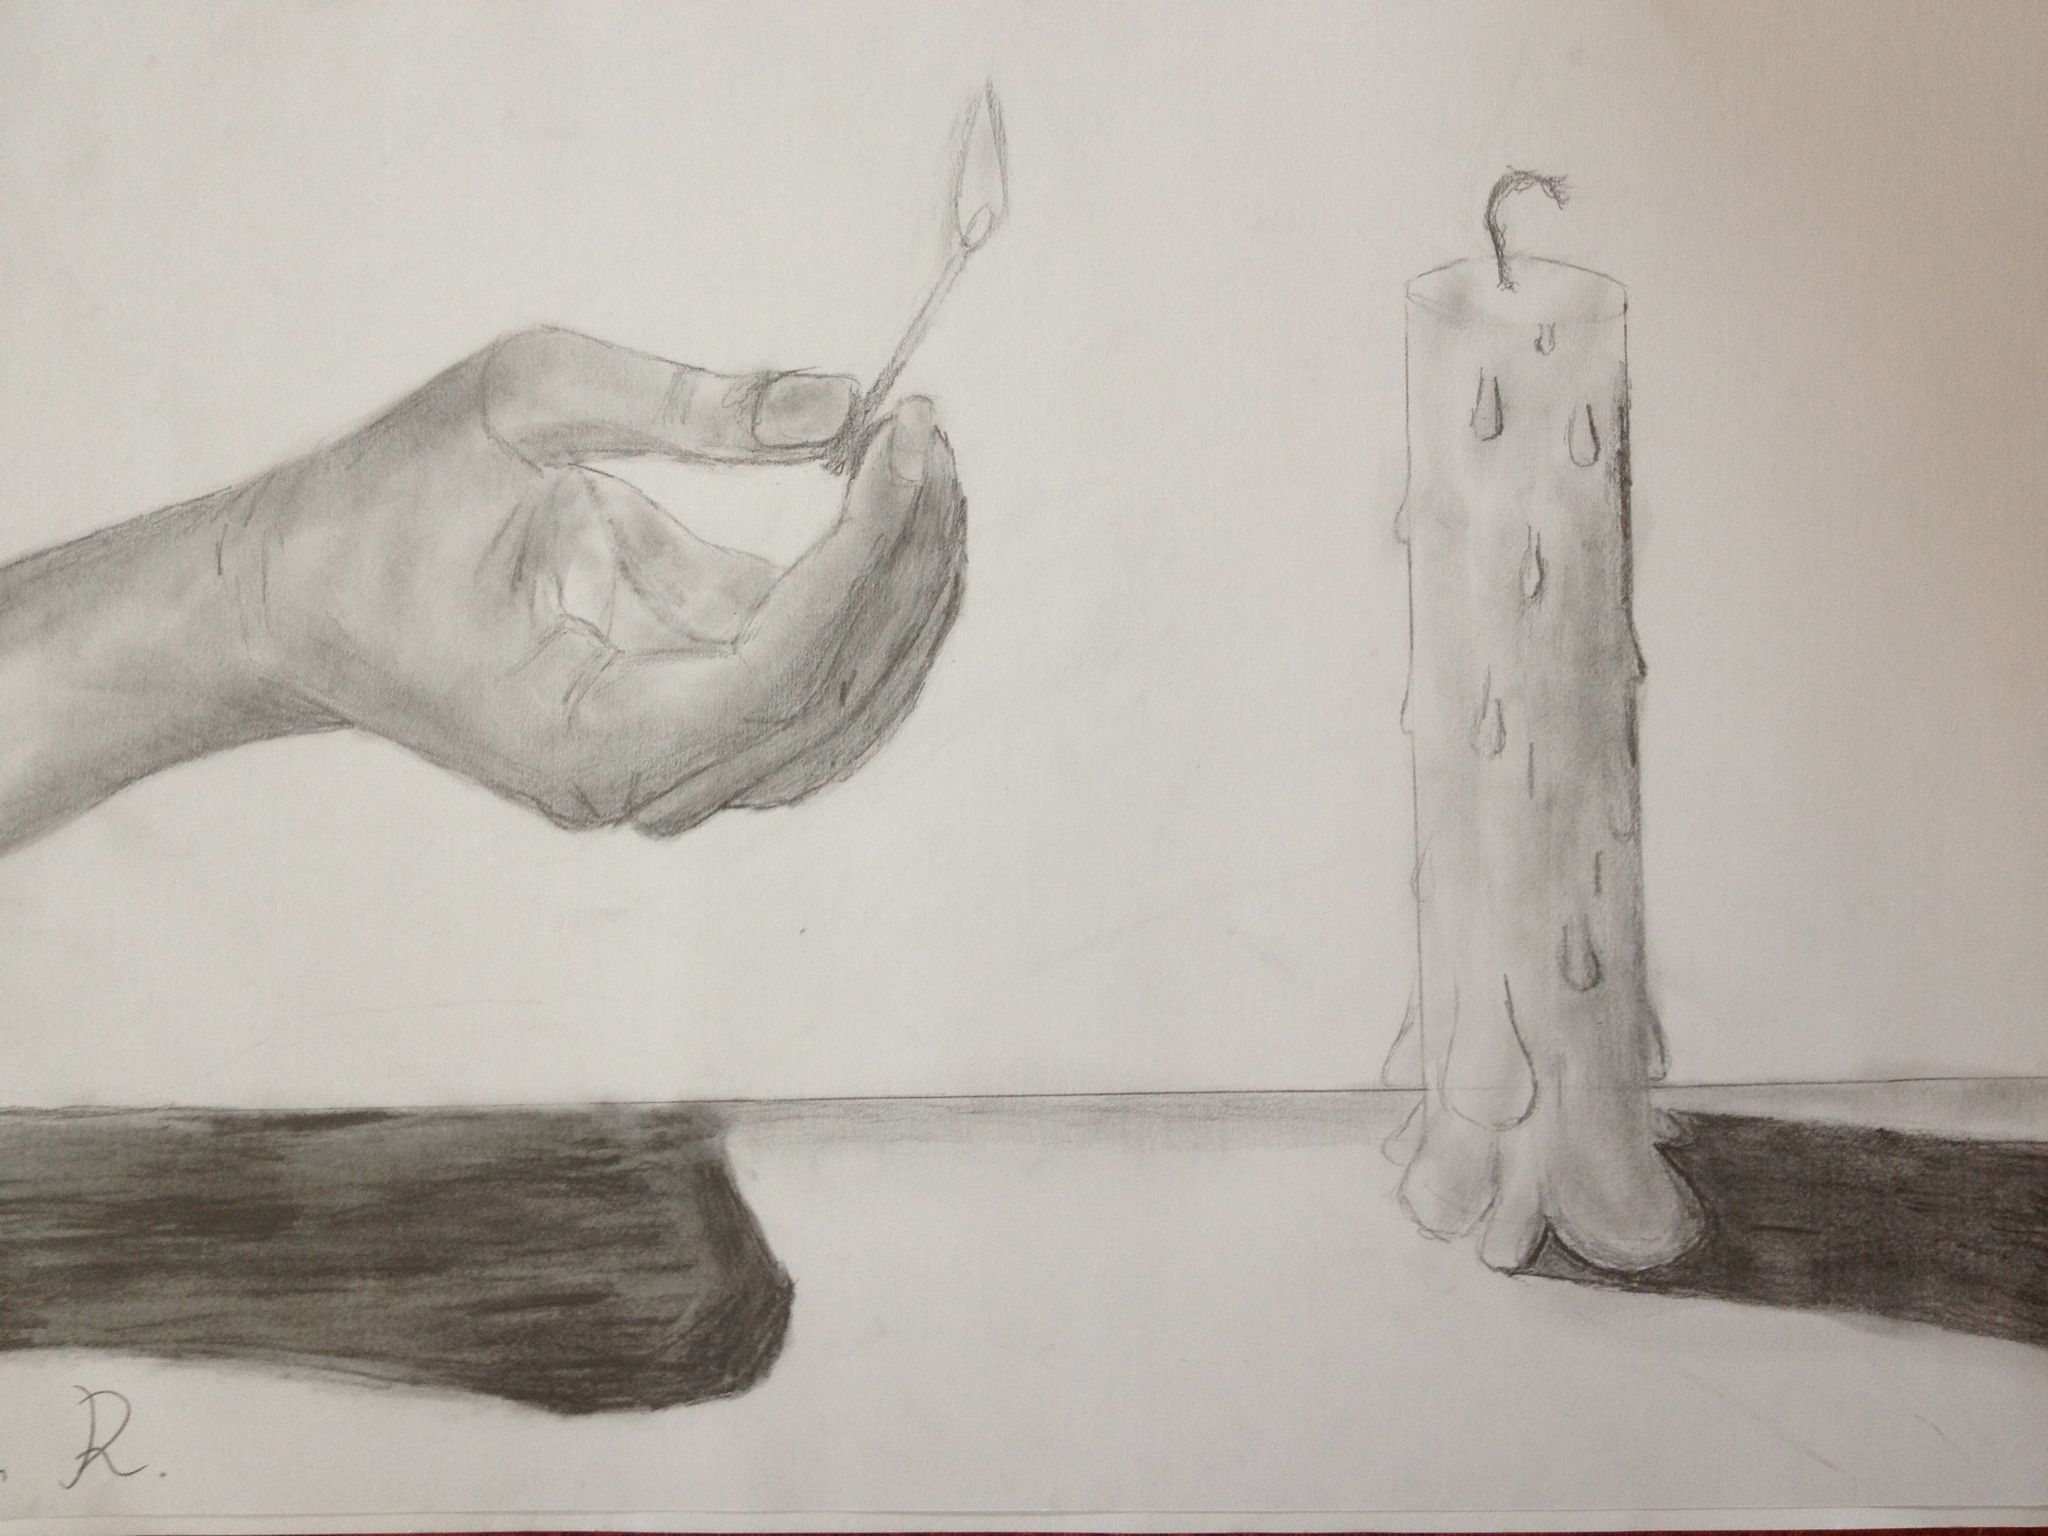 Candle Impressive Pencil Drawing by Noah R a 10 year old child